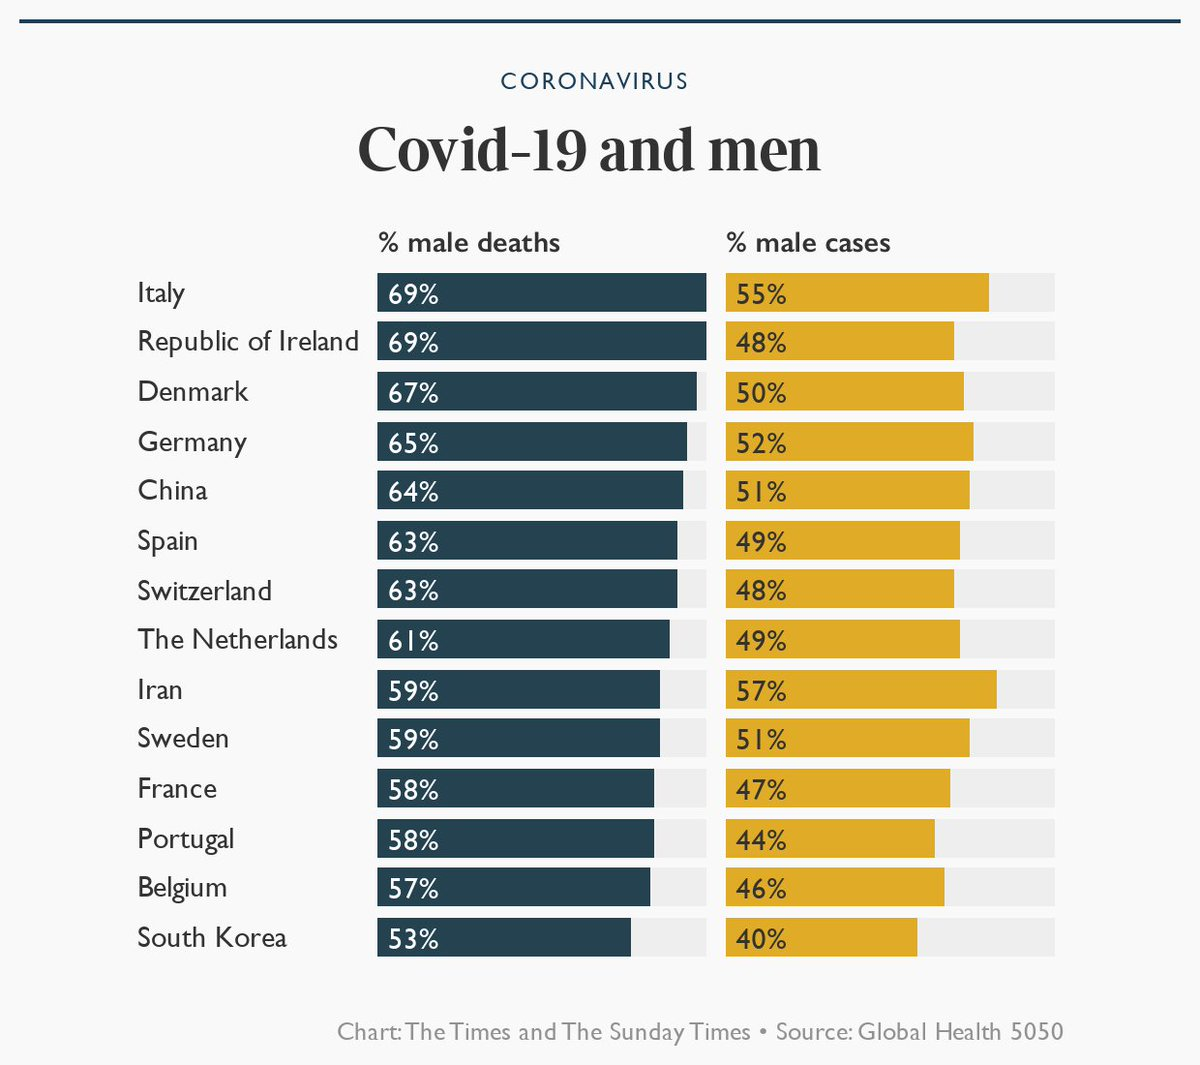 Every country that publishes data by gender shows more men are dying than women